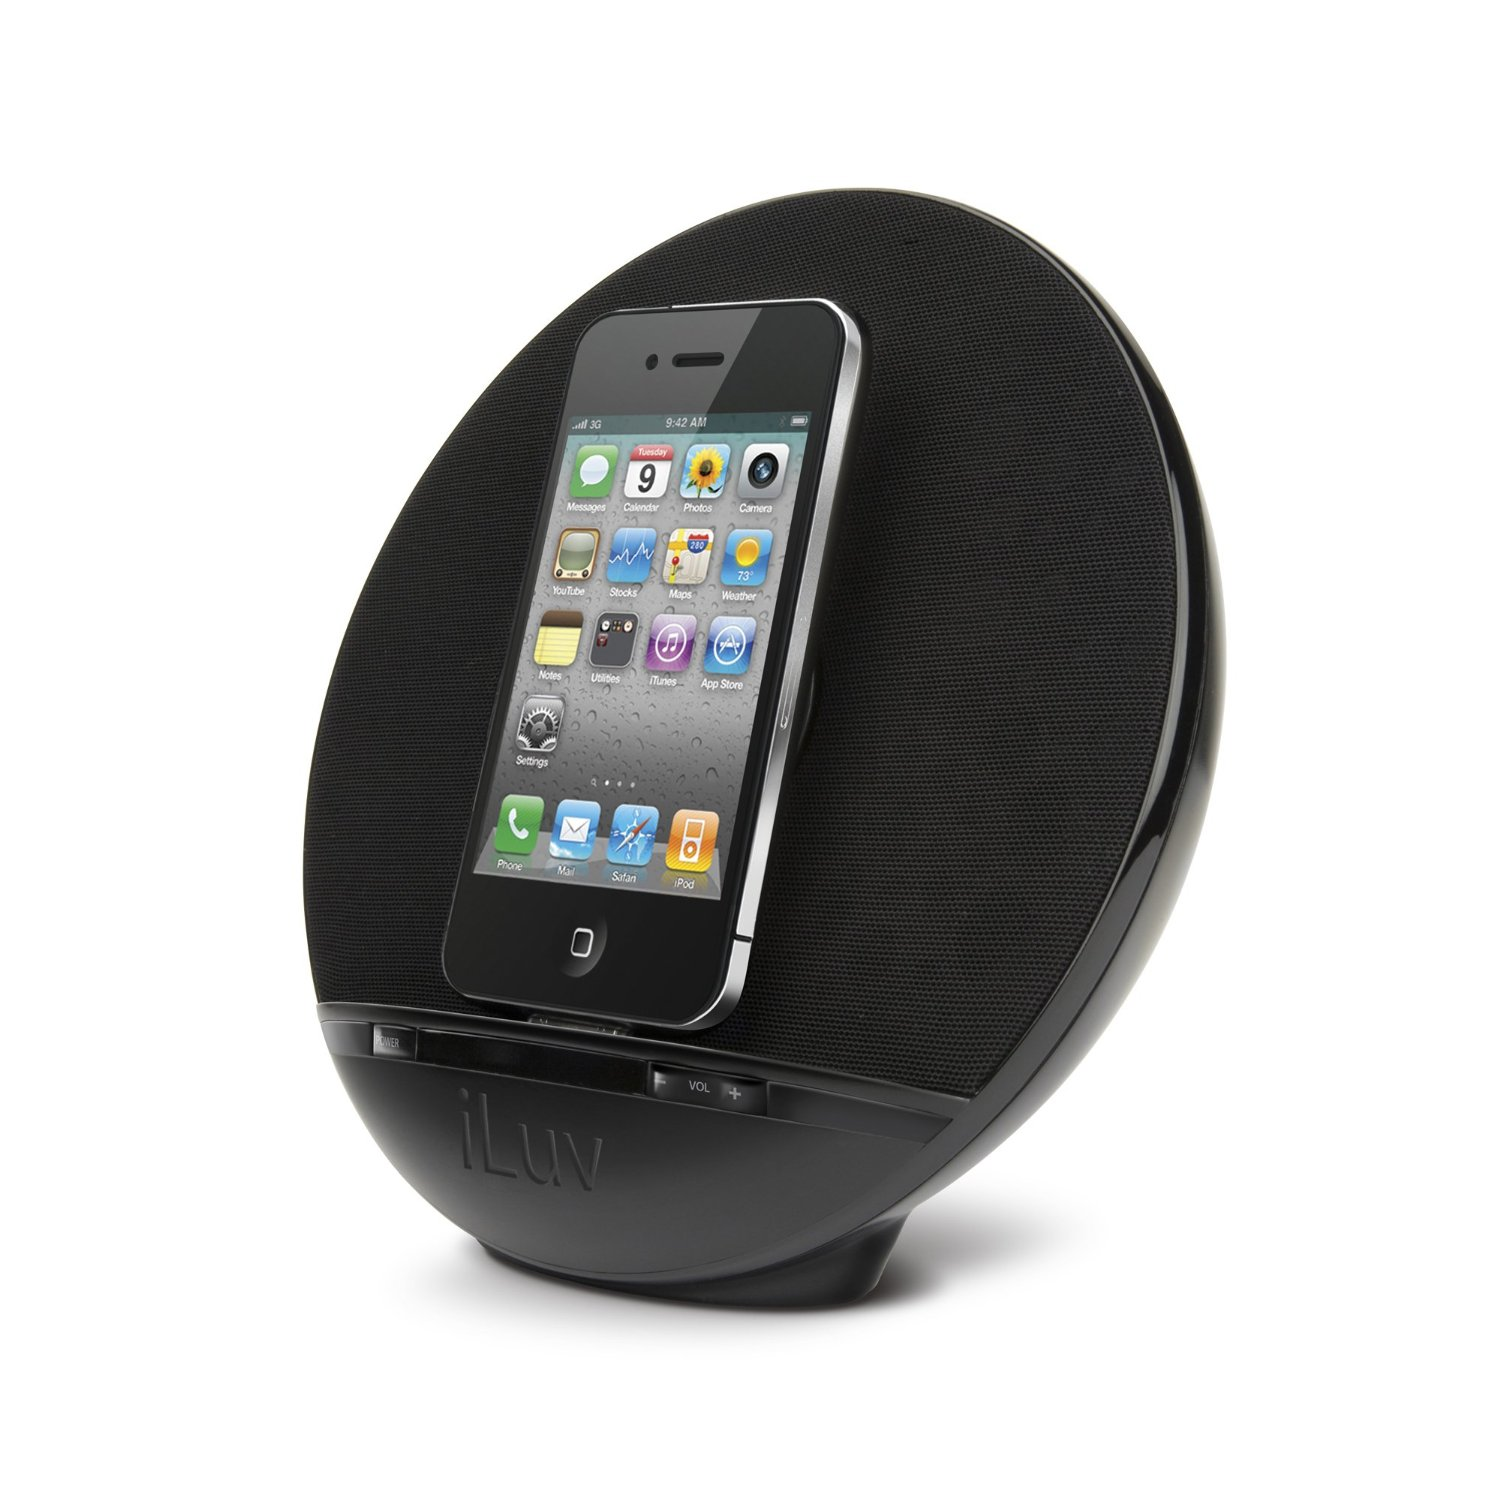 imm289blk iluv stereo speaker iphone ipod dock black. Black Bedroom Furniture Sets. Home Design Ideas